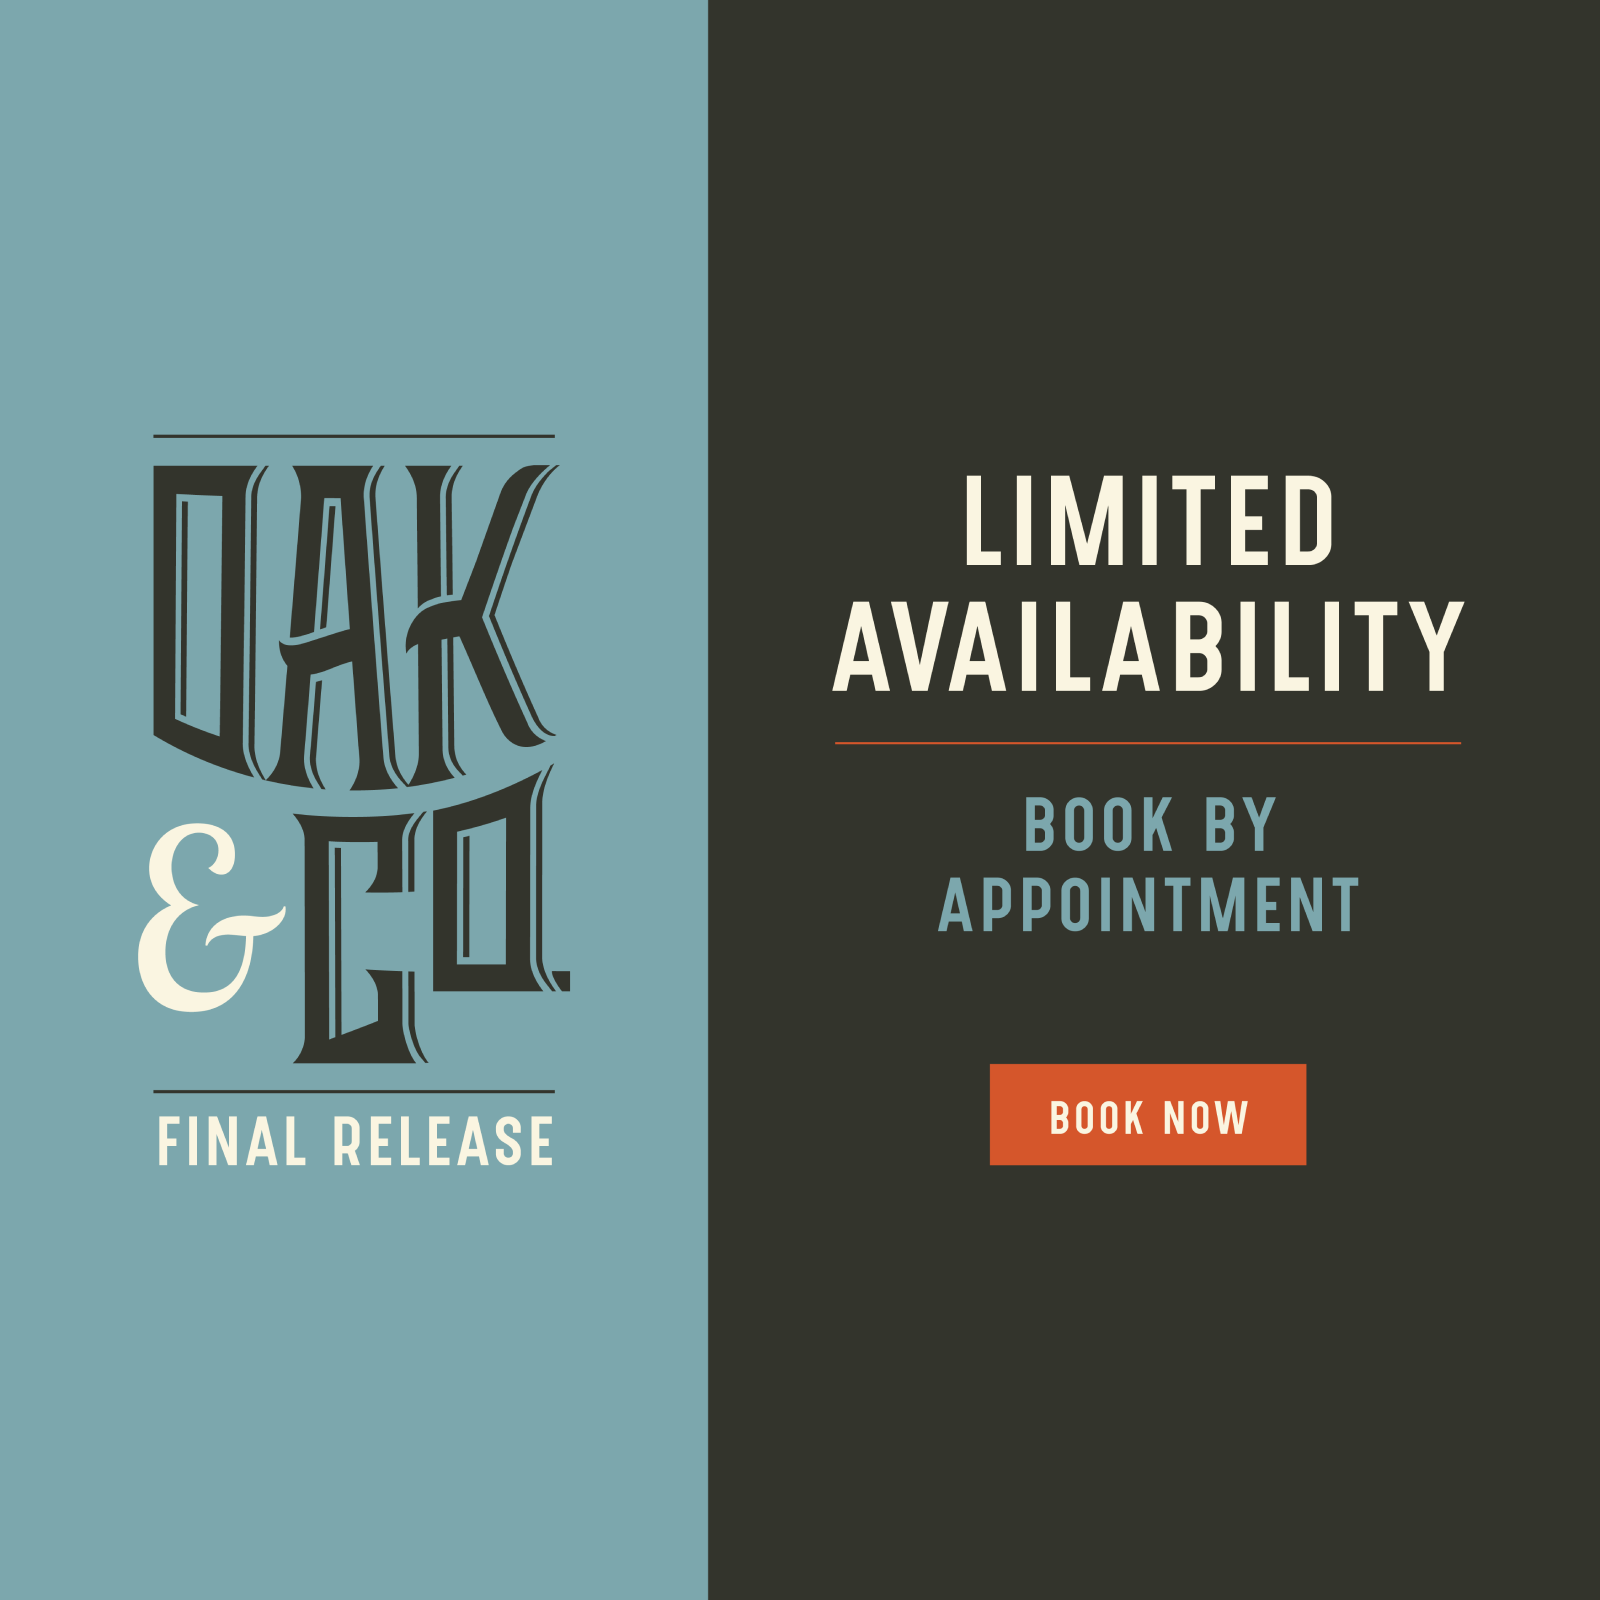 Oak & Co. Final Release. Limited Availability. Book by Appointment.